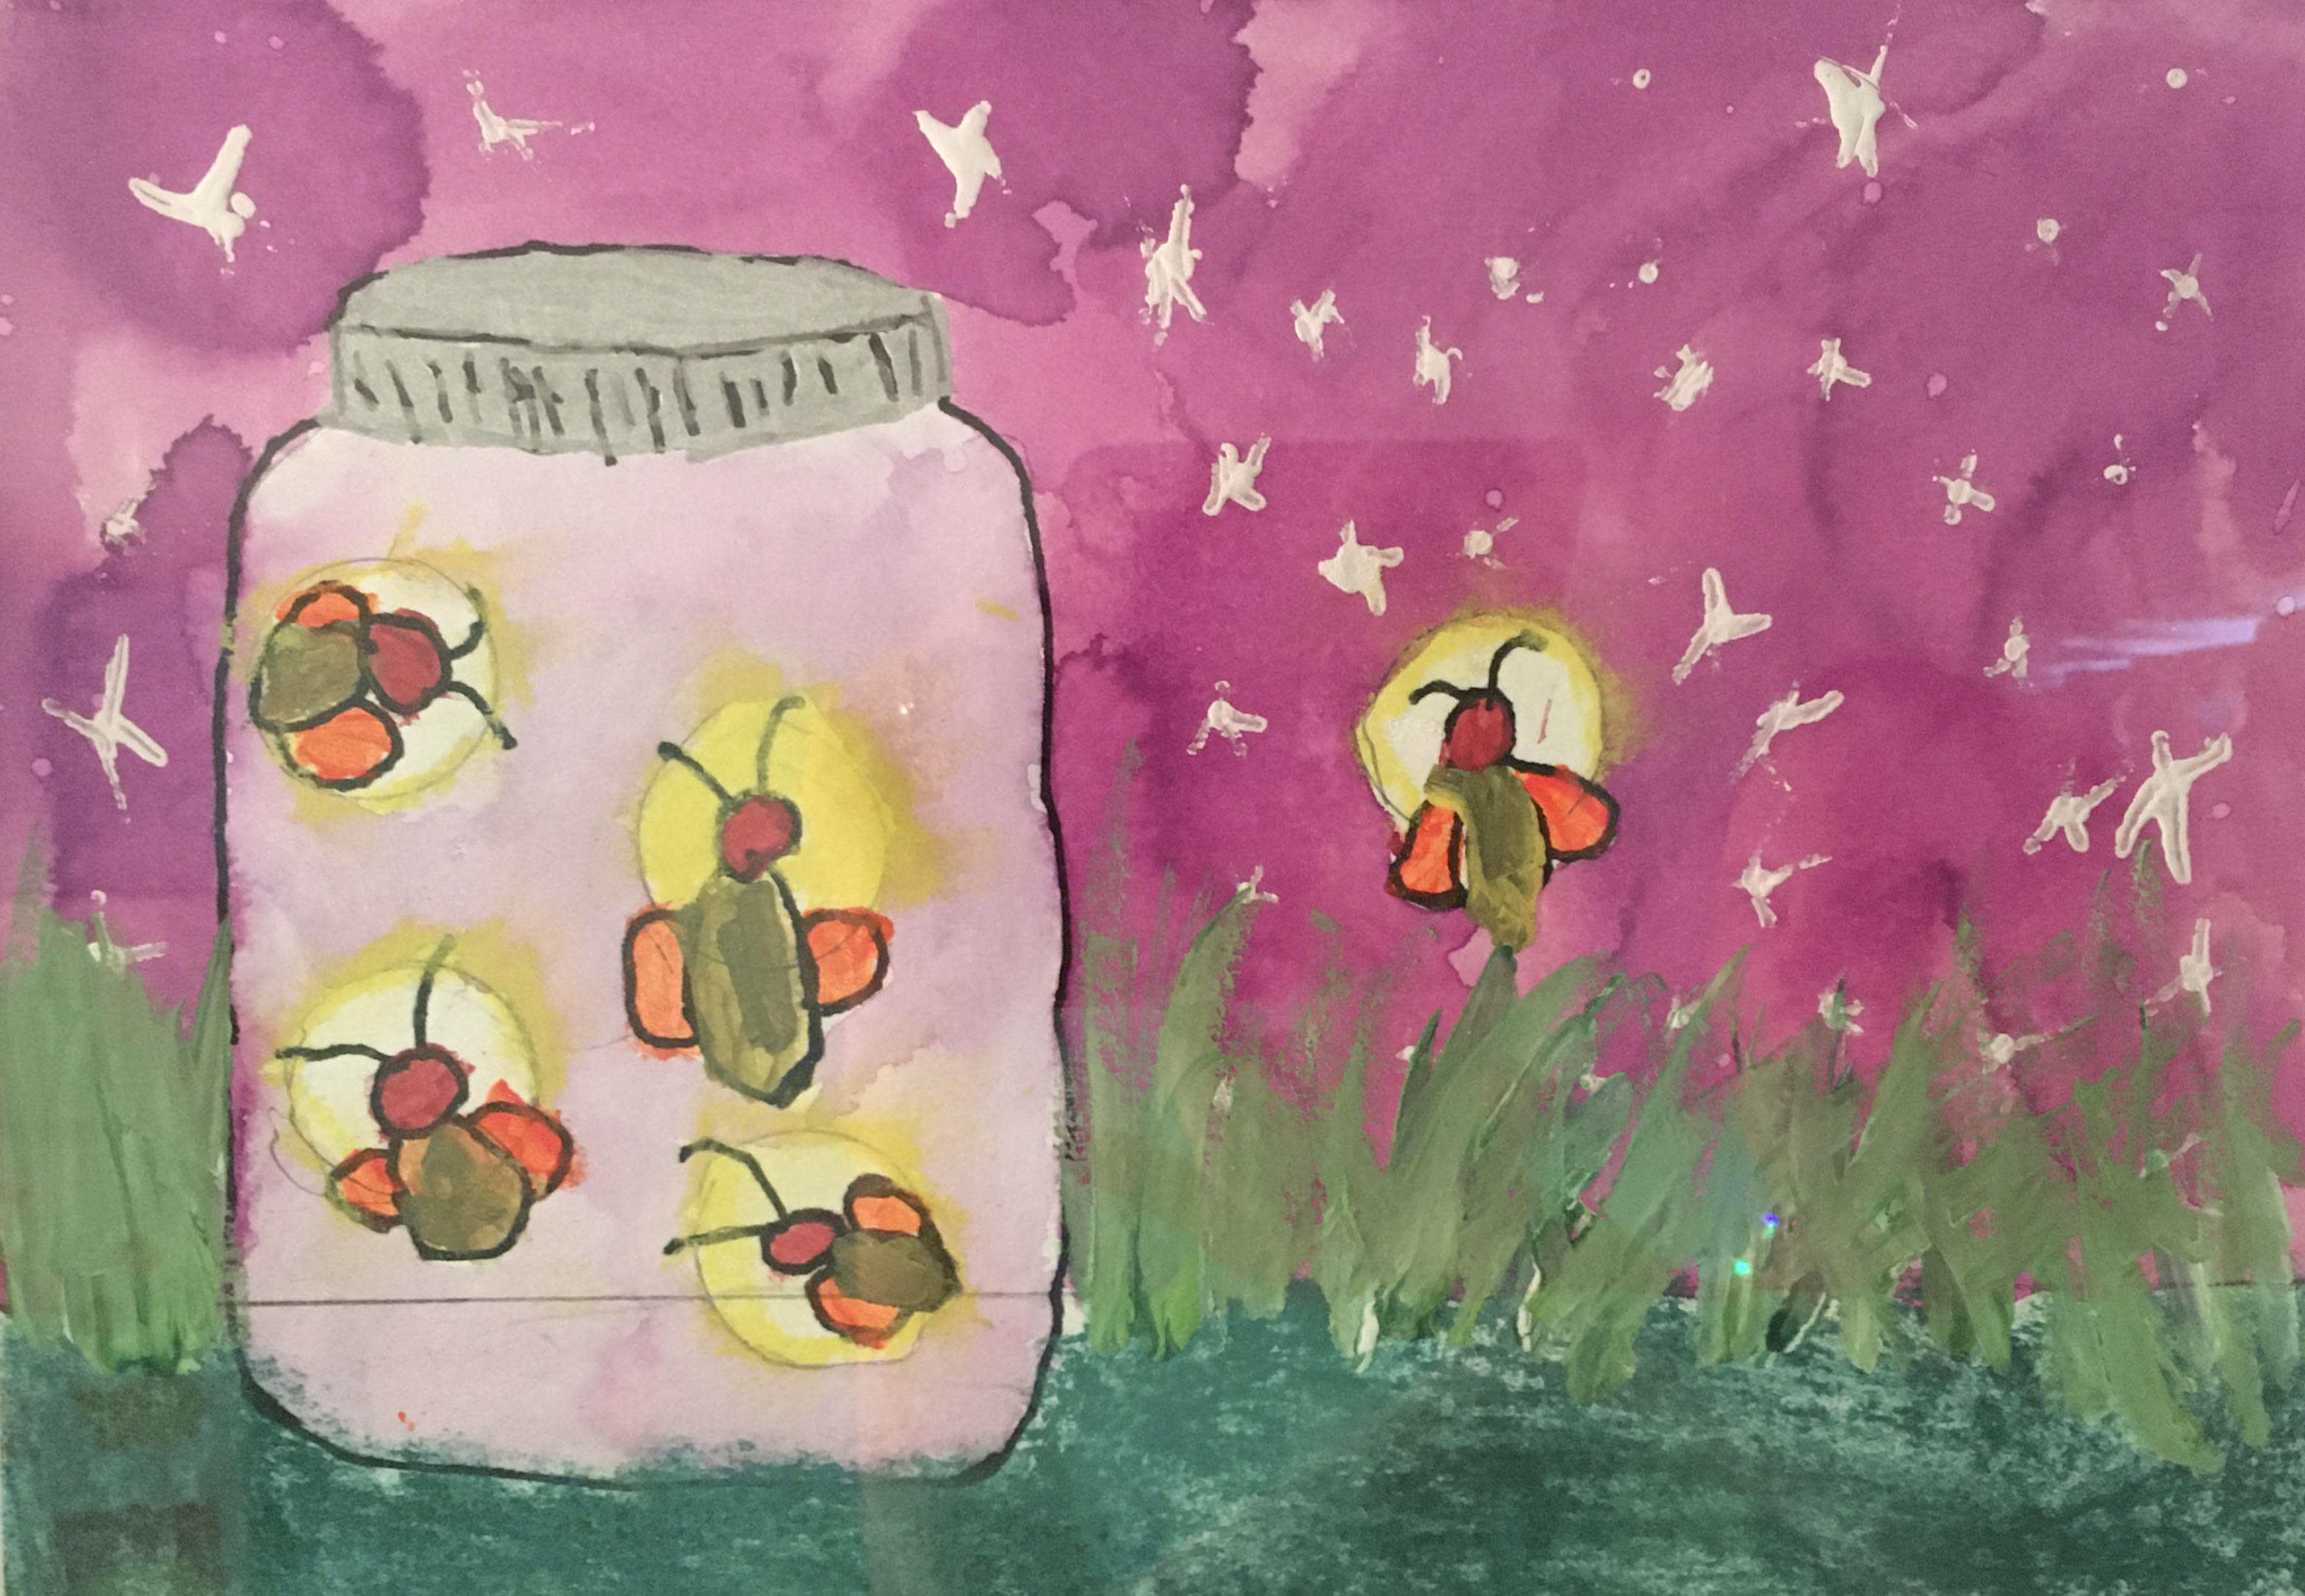 Lightening Bugs by Natalie Montes